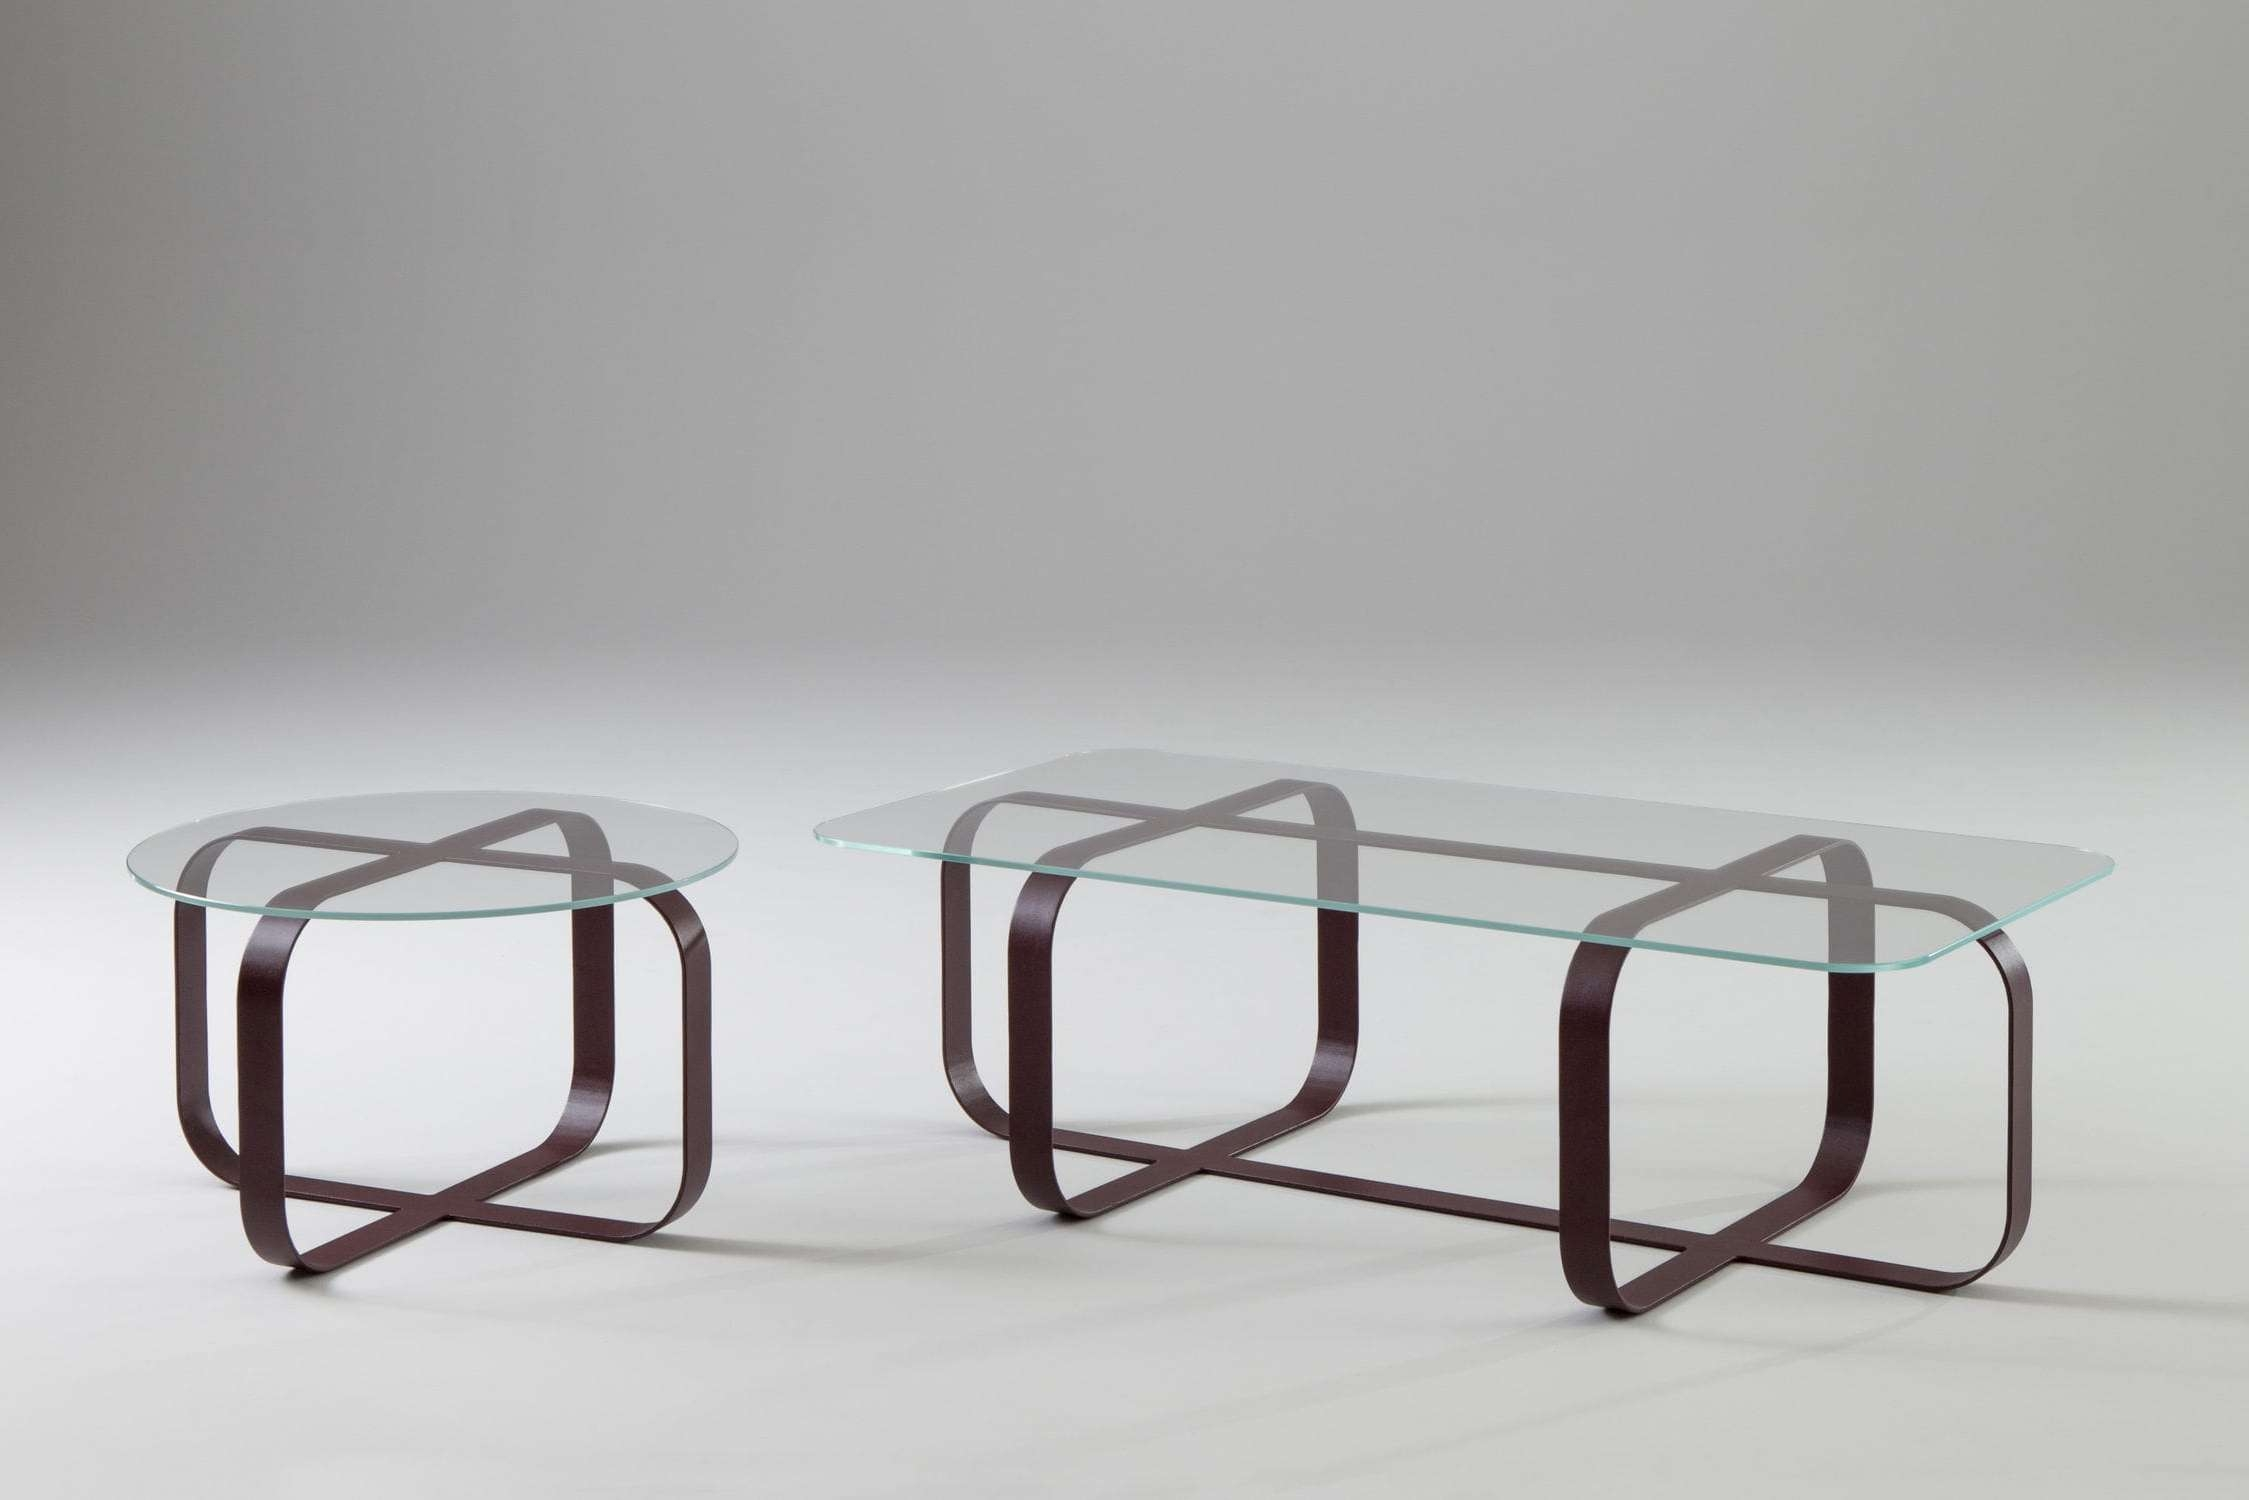 Coffee Table Wrought Iron And Glass Coffee Table Large Glass Top Inside 2017 Dark Wood Coffee Tables With Glass Top (View 22 of 23)